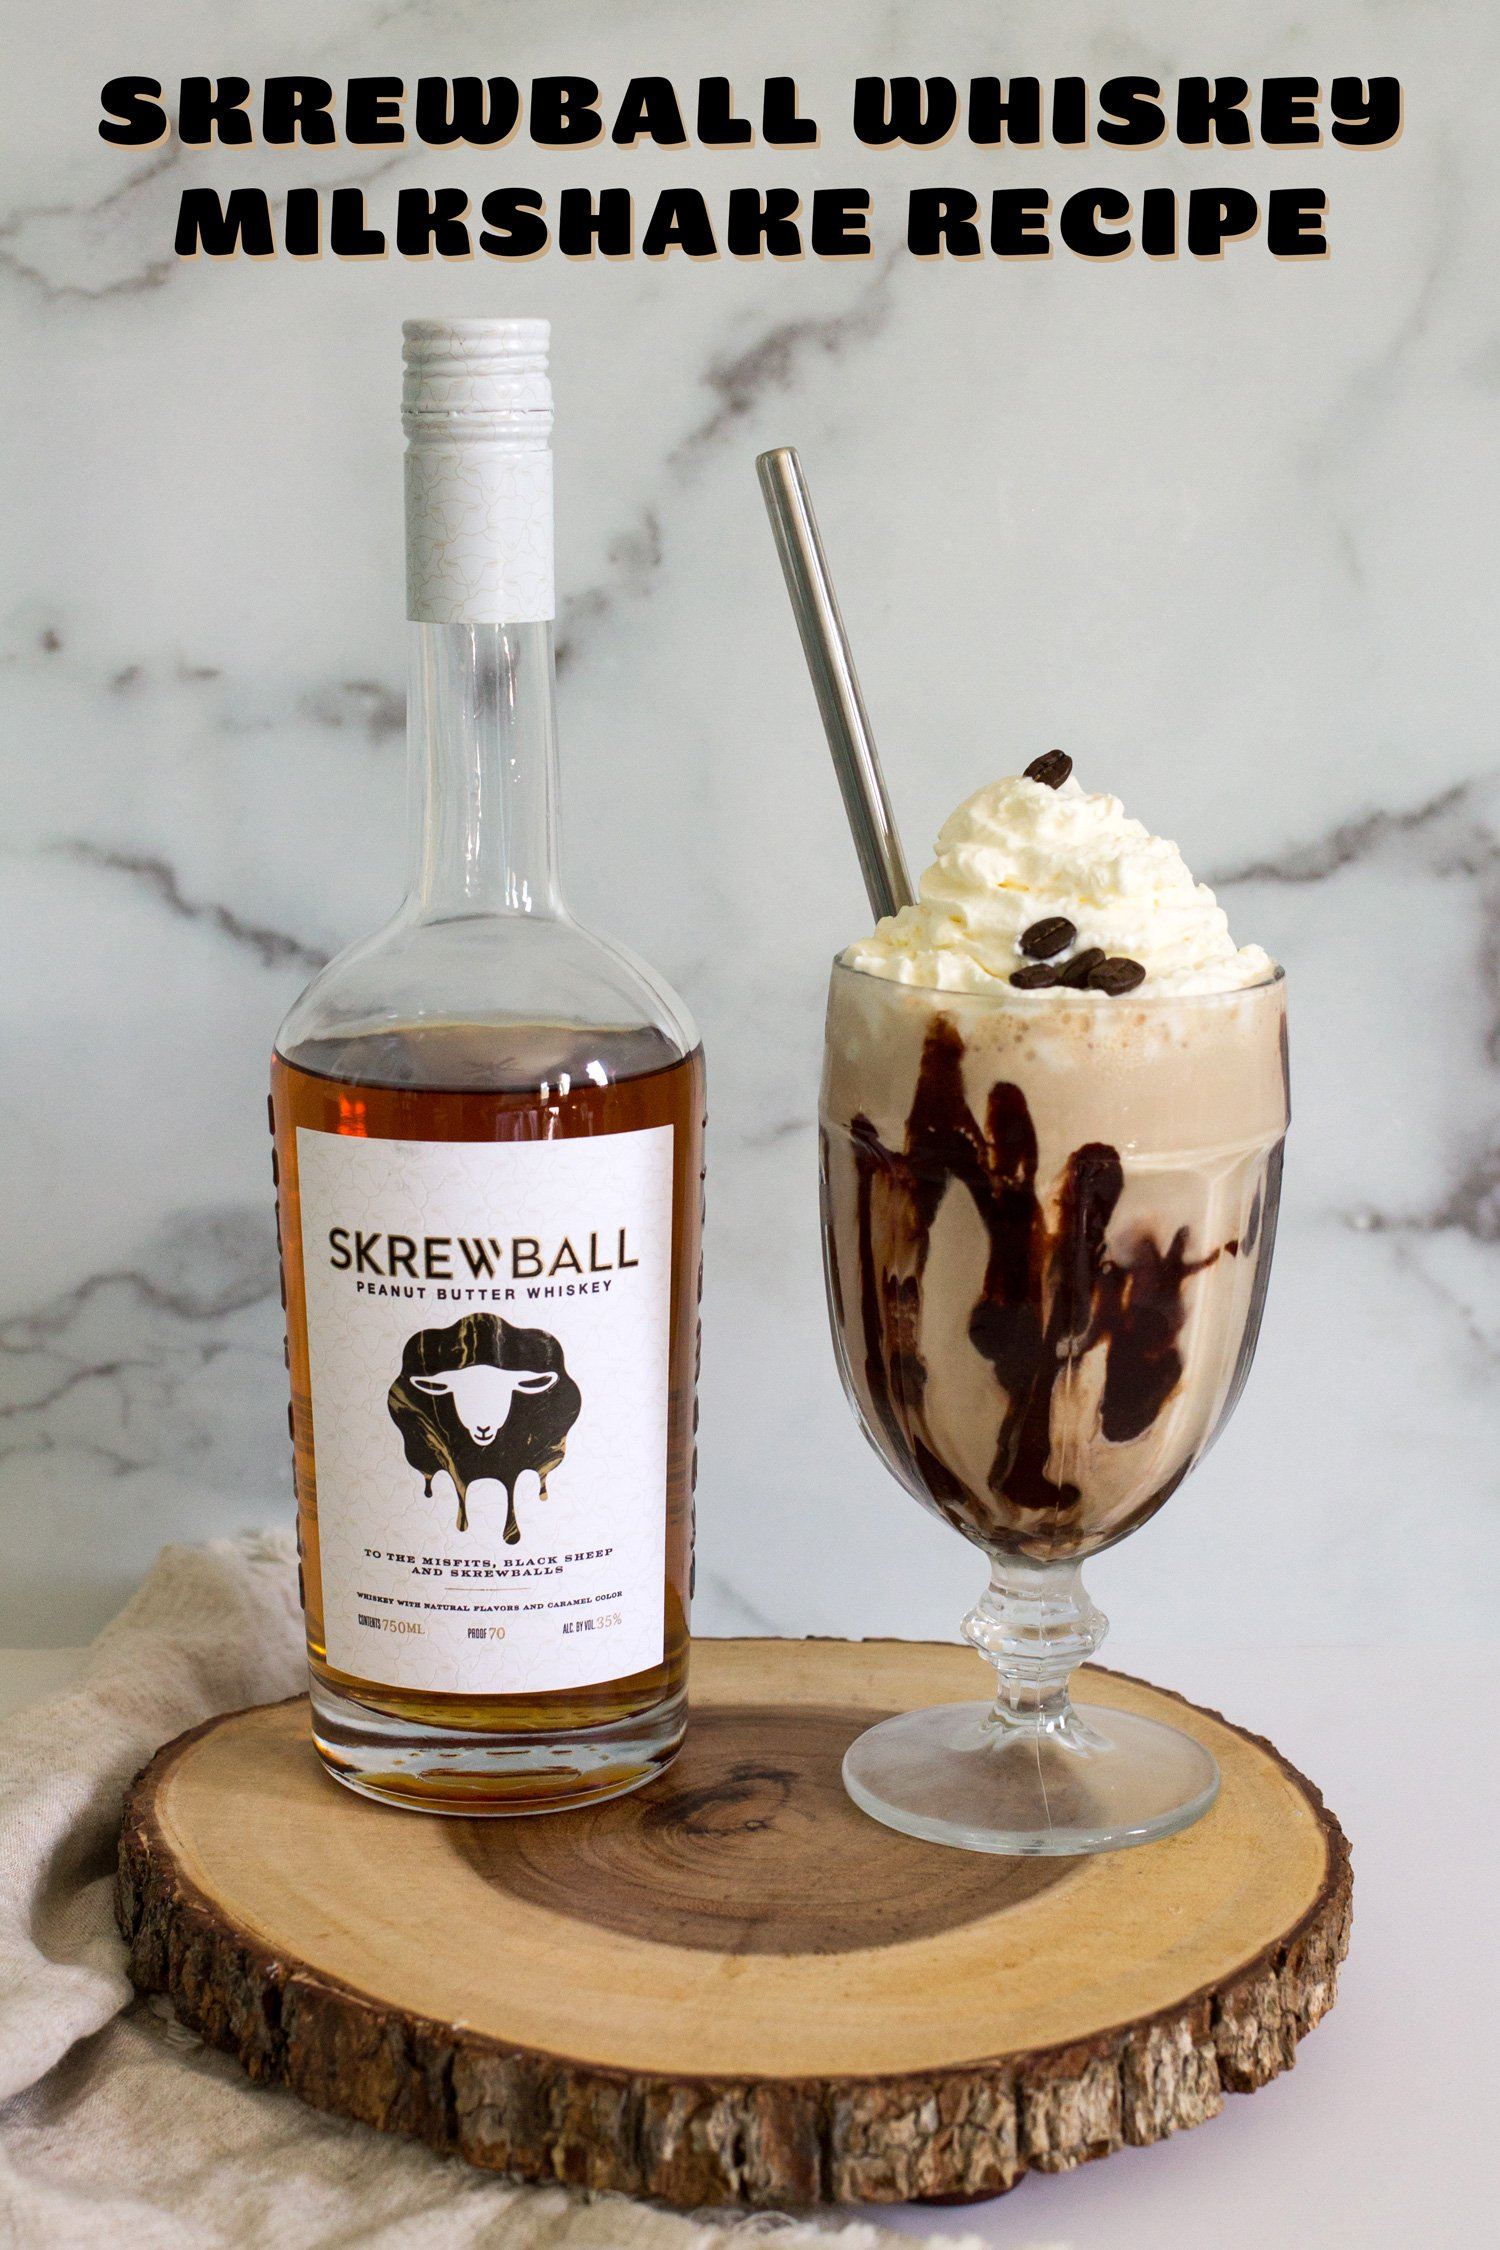 Skrewball Whiskey Milkshake Recipe